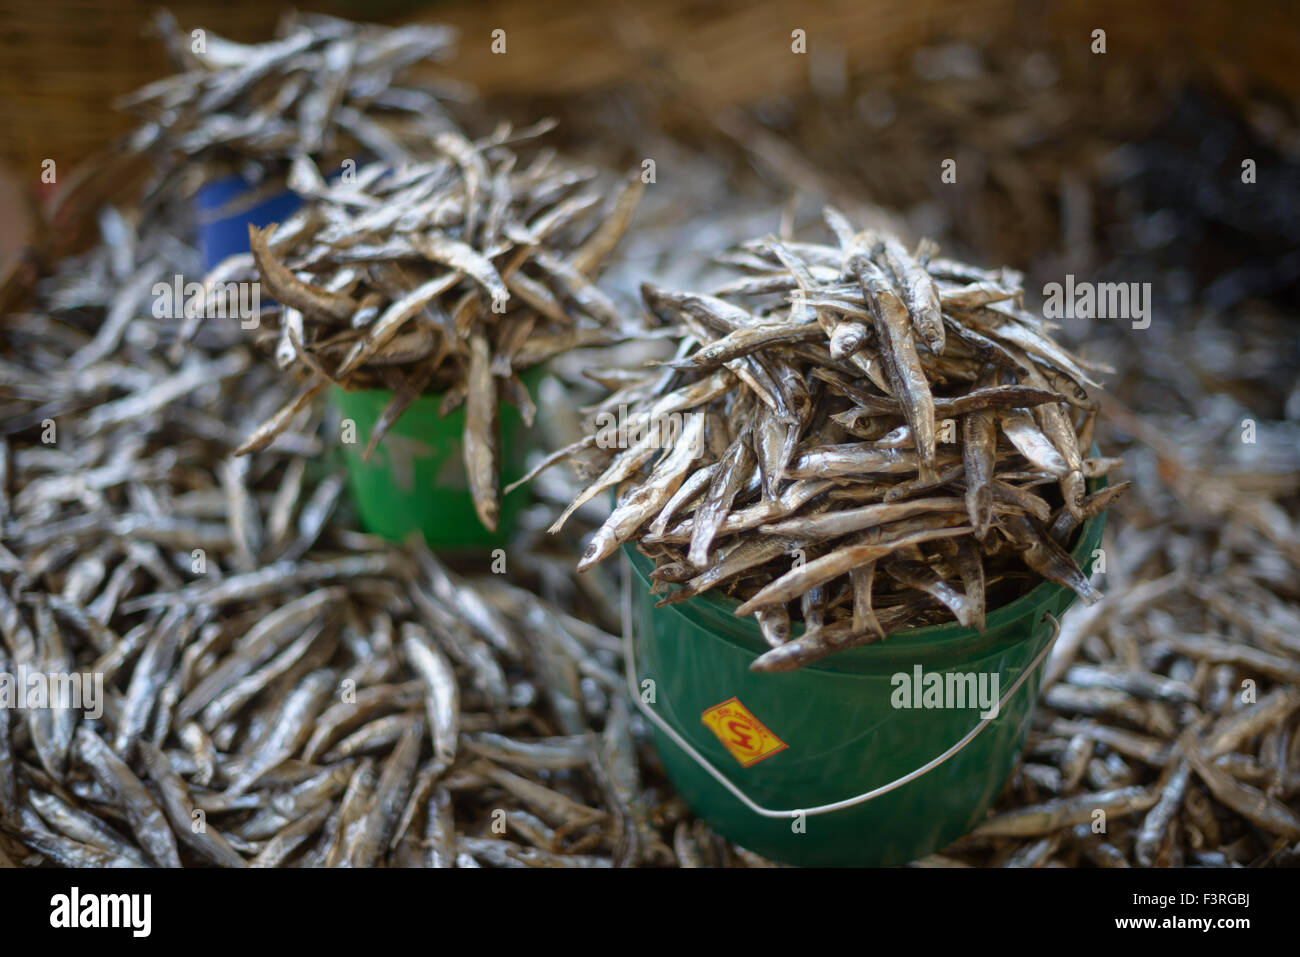 Open-air fish market at the Lake Malawi, Malawi, Africa Stock Photo